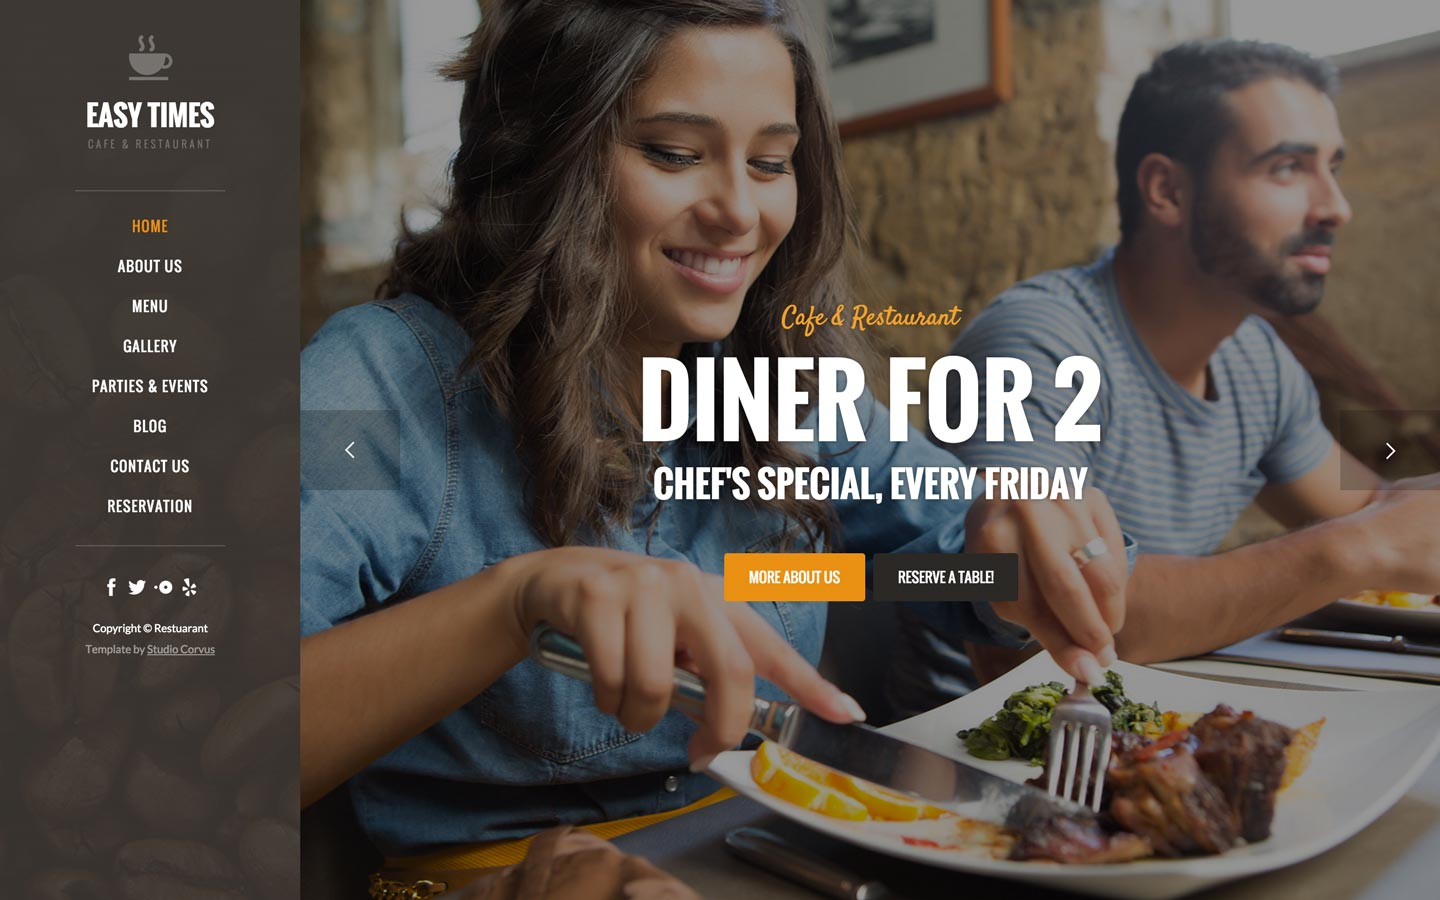 Easy Times cafe and restaurant website template